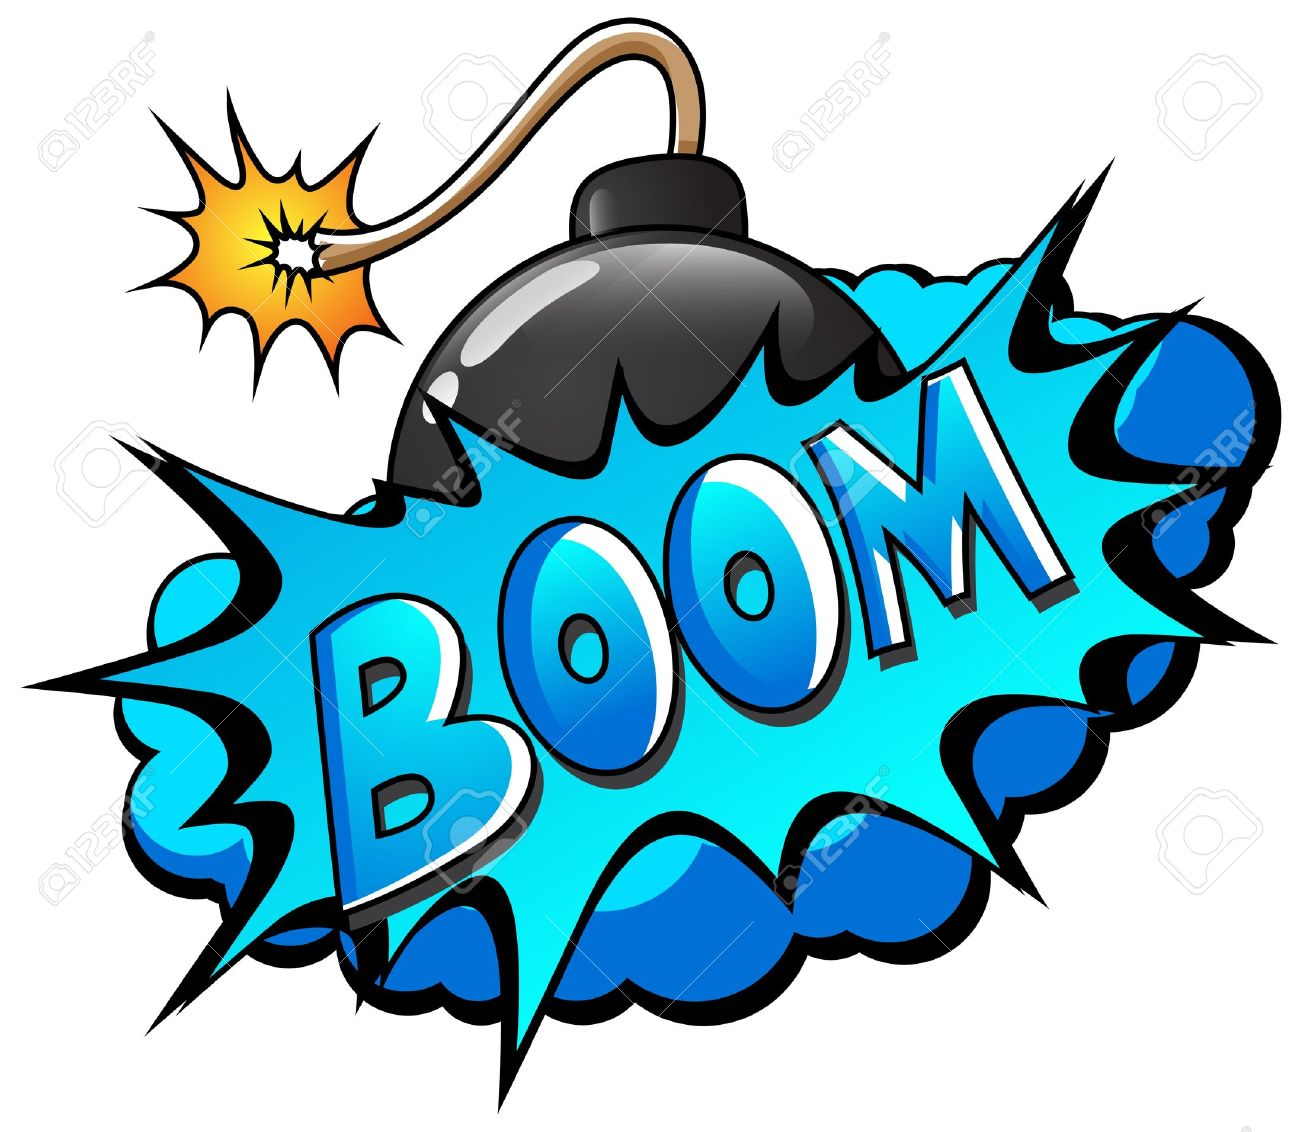 Boom - Comic Blast Expression  Text Stock Vector - 19419779